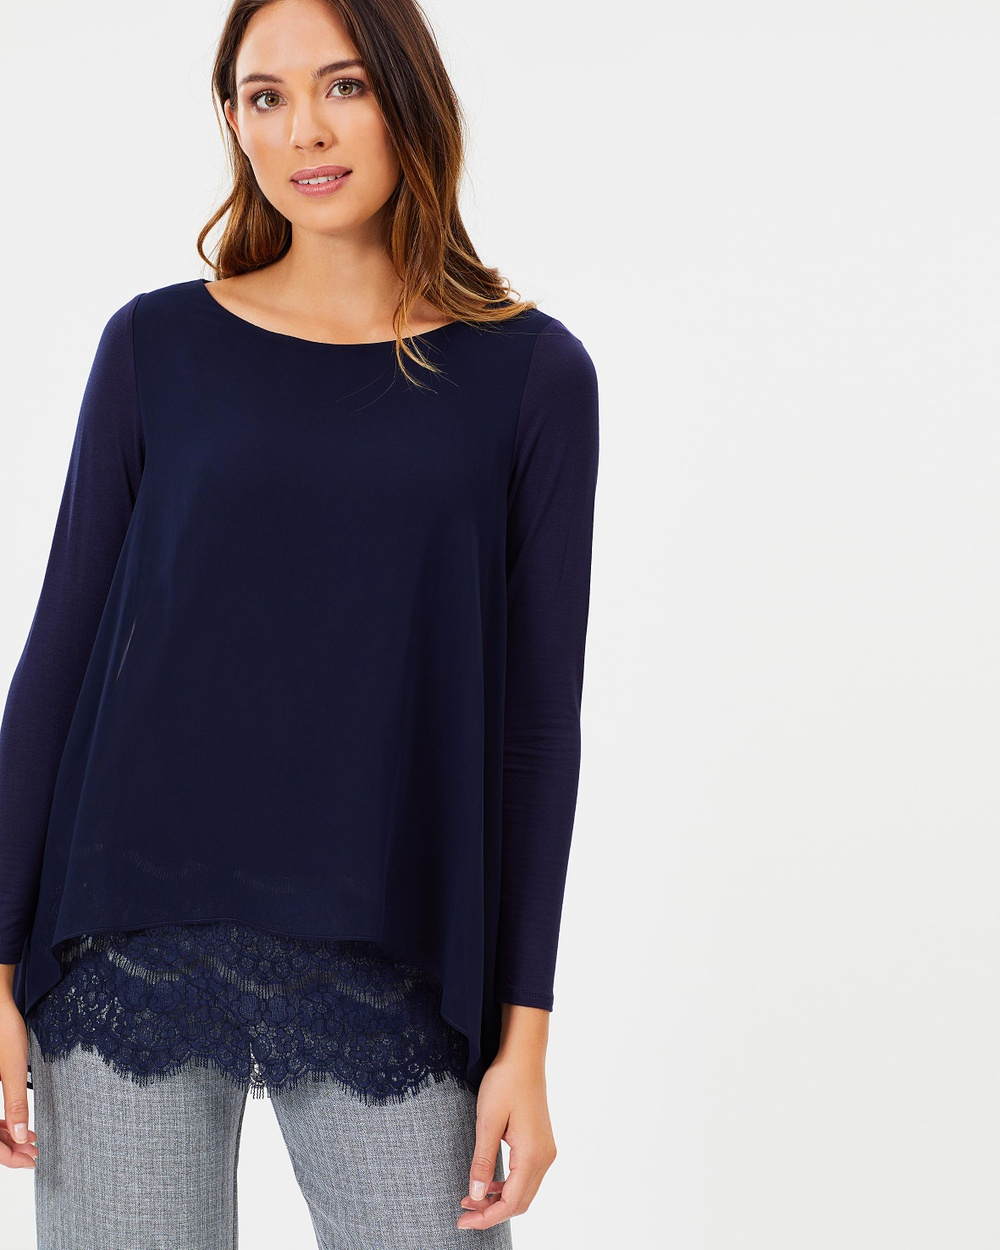 Wallis Lace Hem Layered Top Tops Navy Blue Lace Hem Layered Top